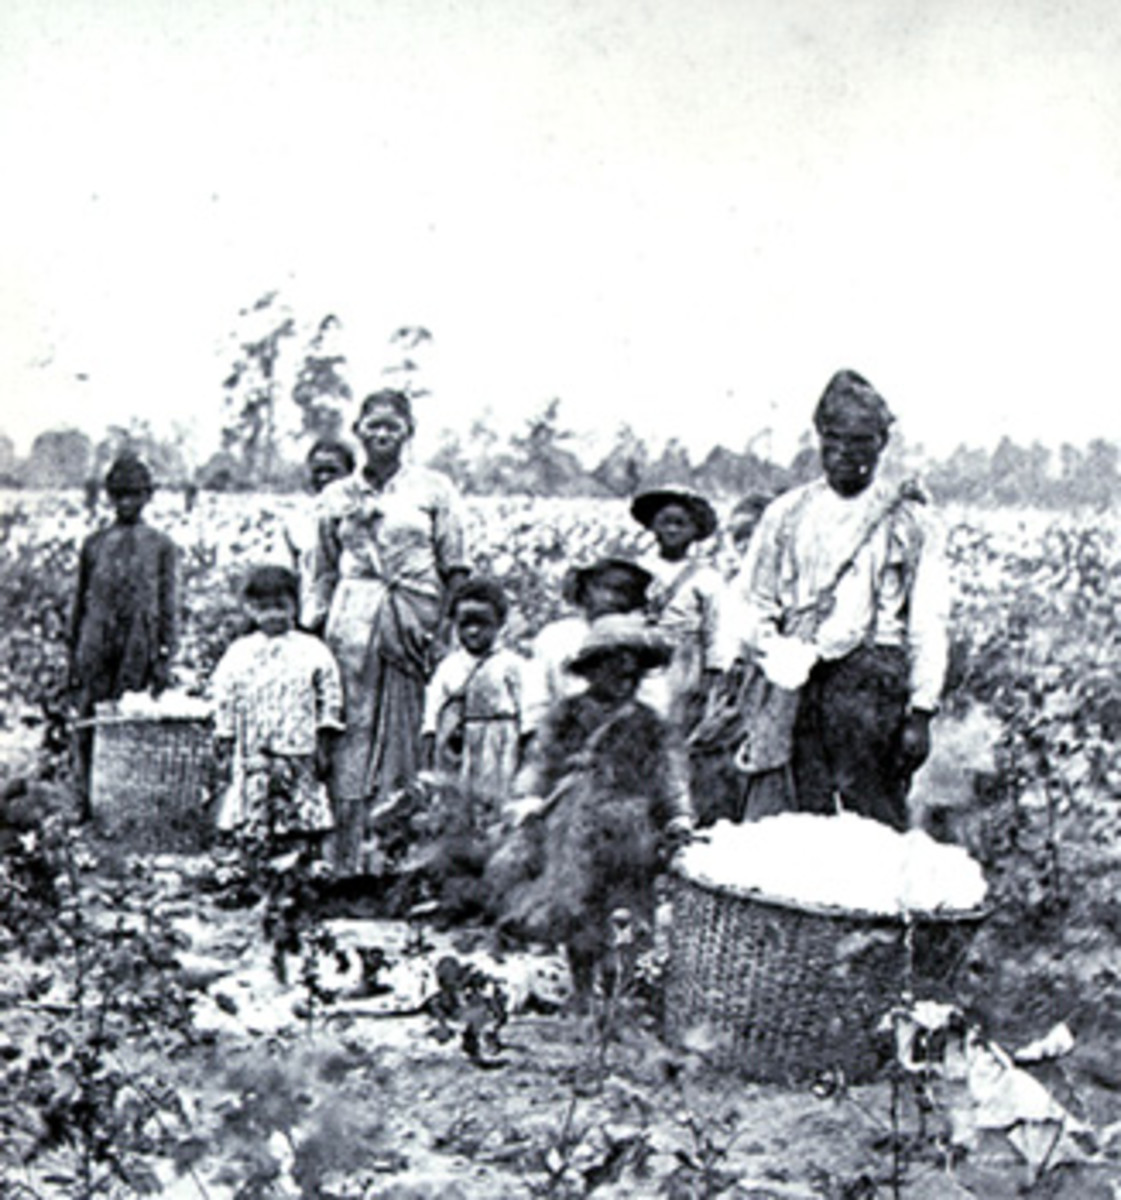 Slaves working in a cotton field